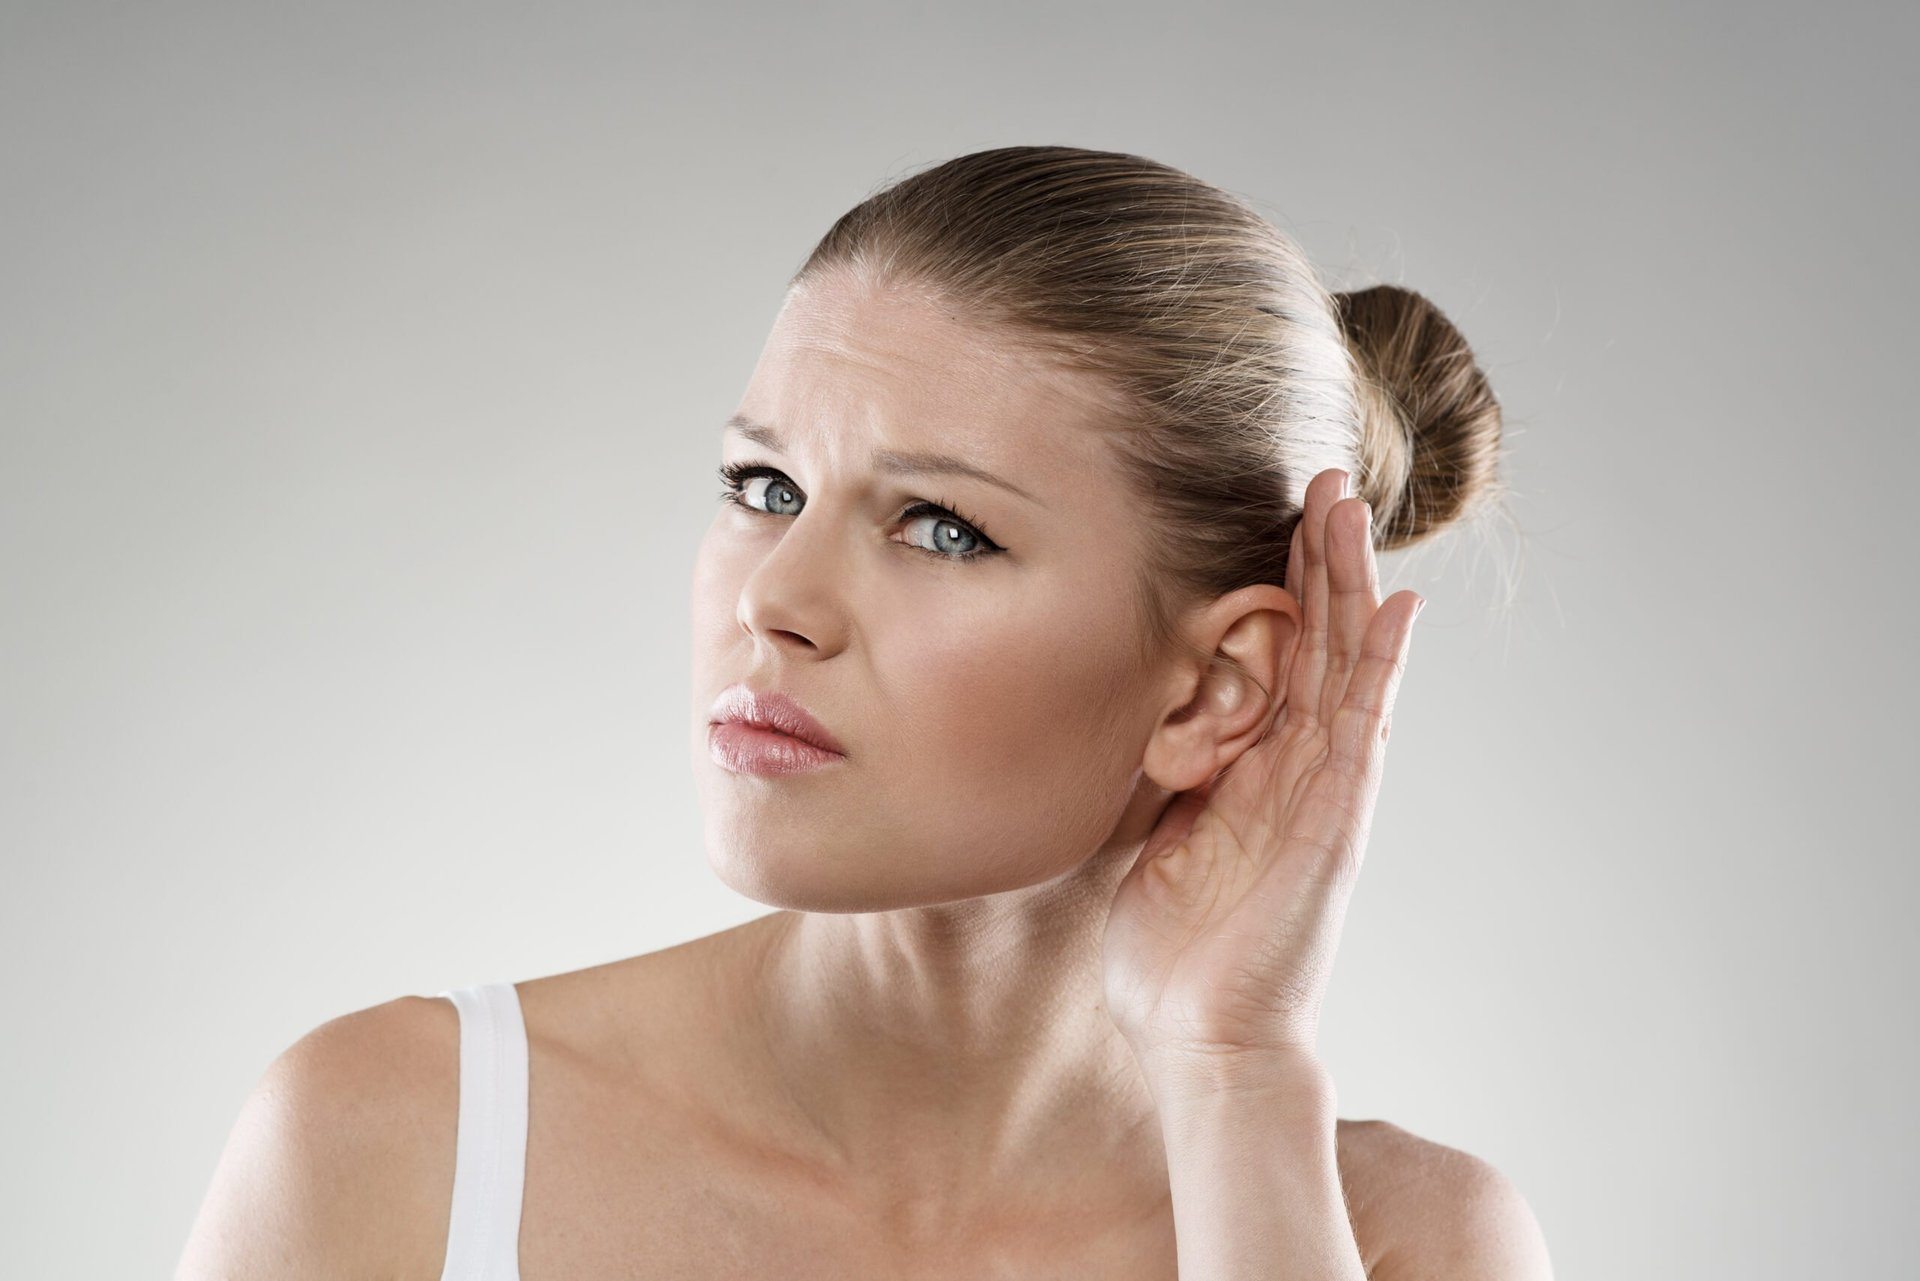 A woman with hearing problems